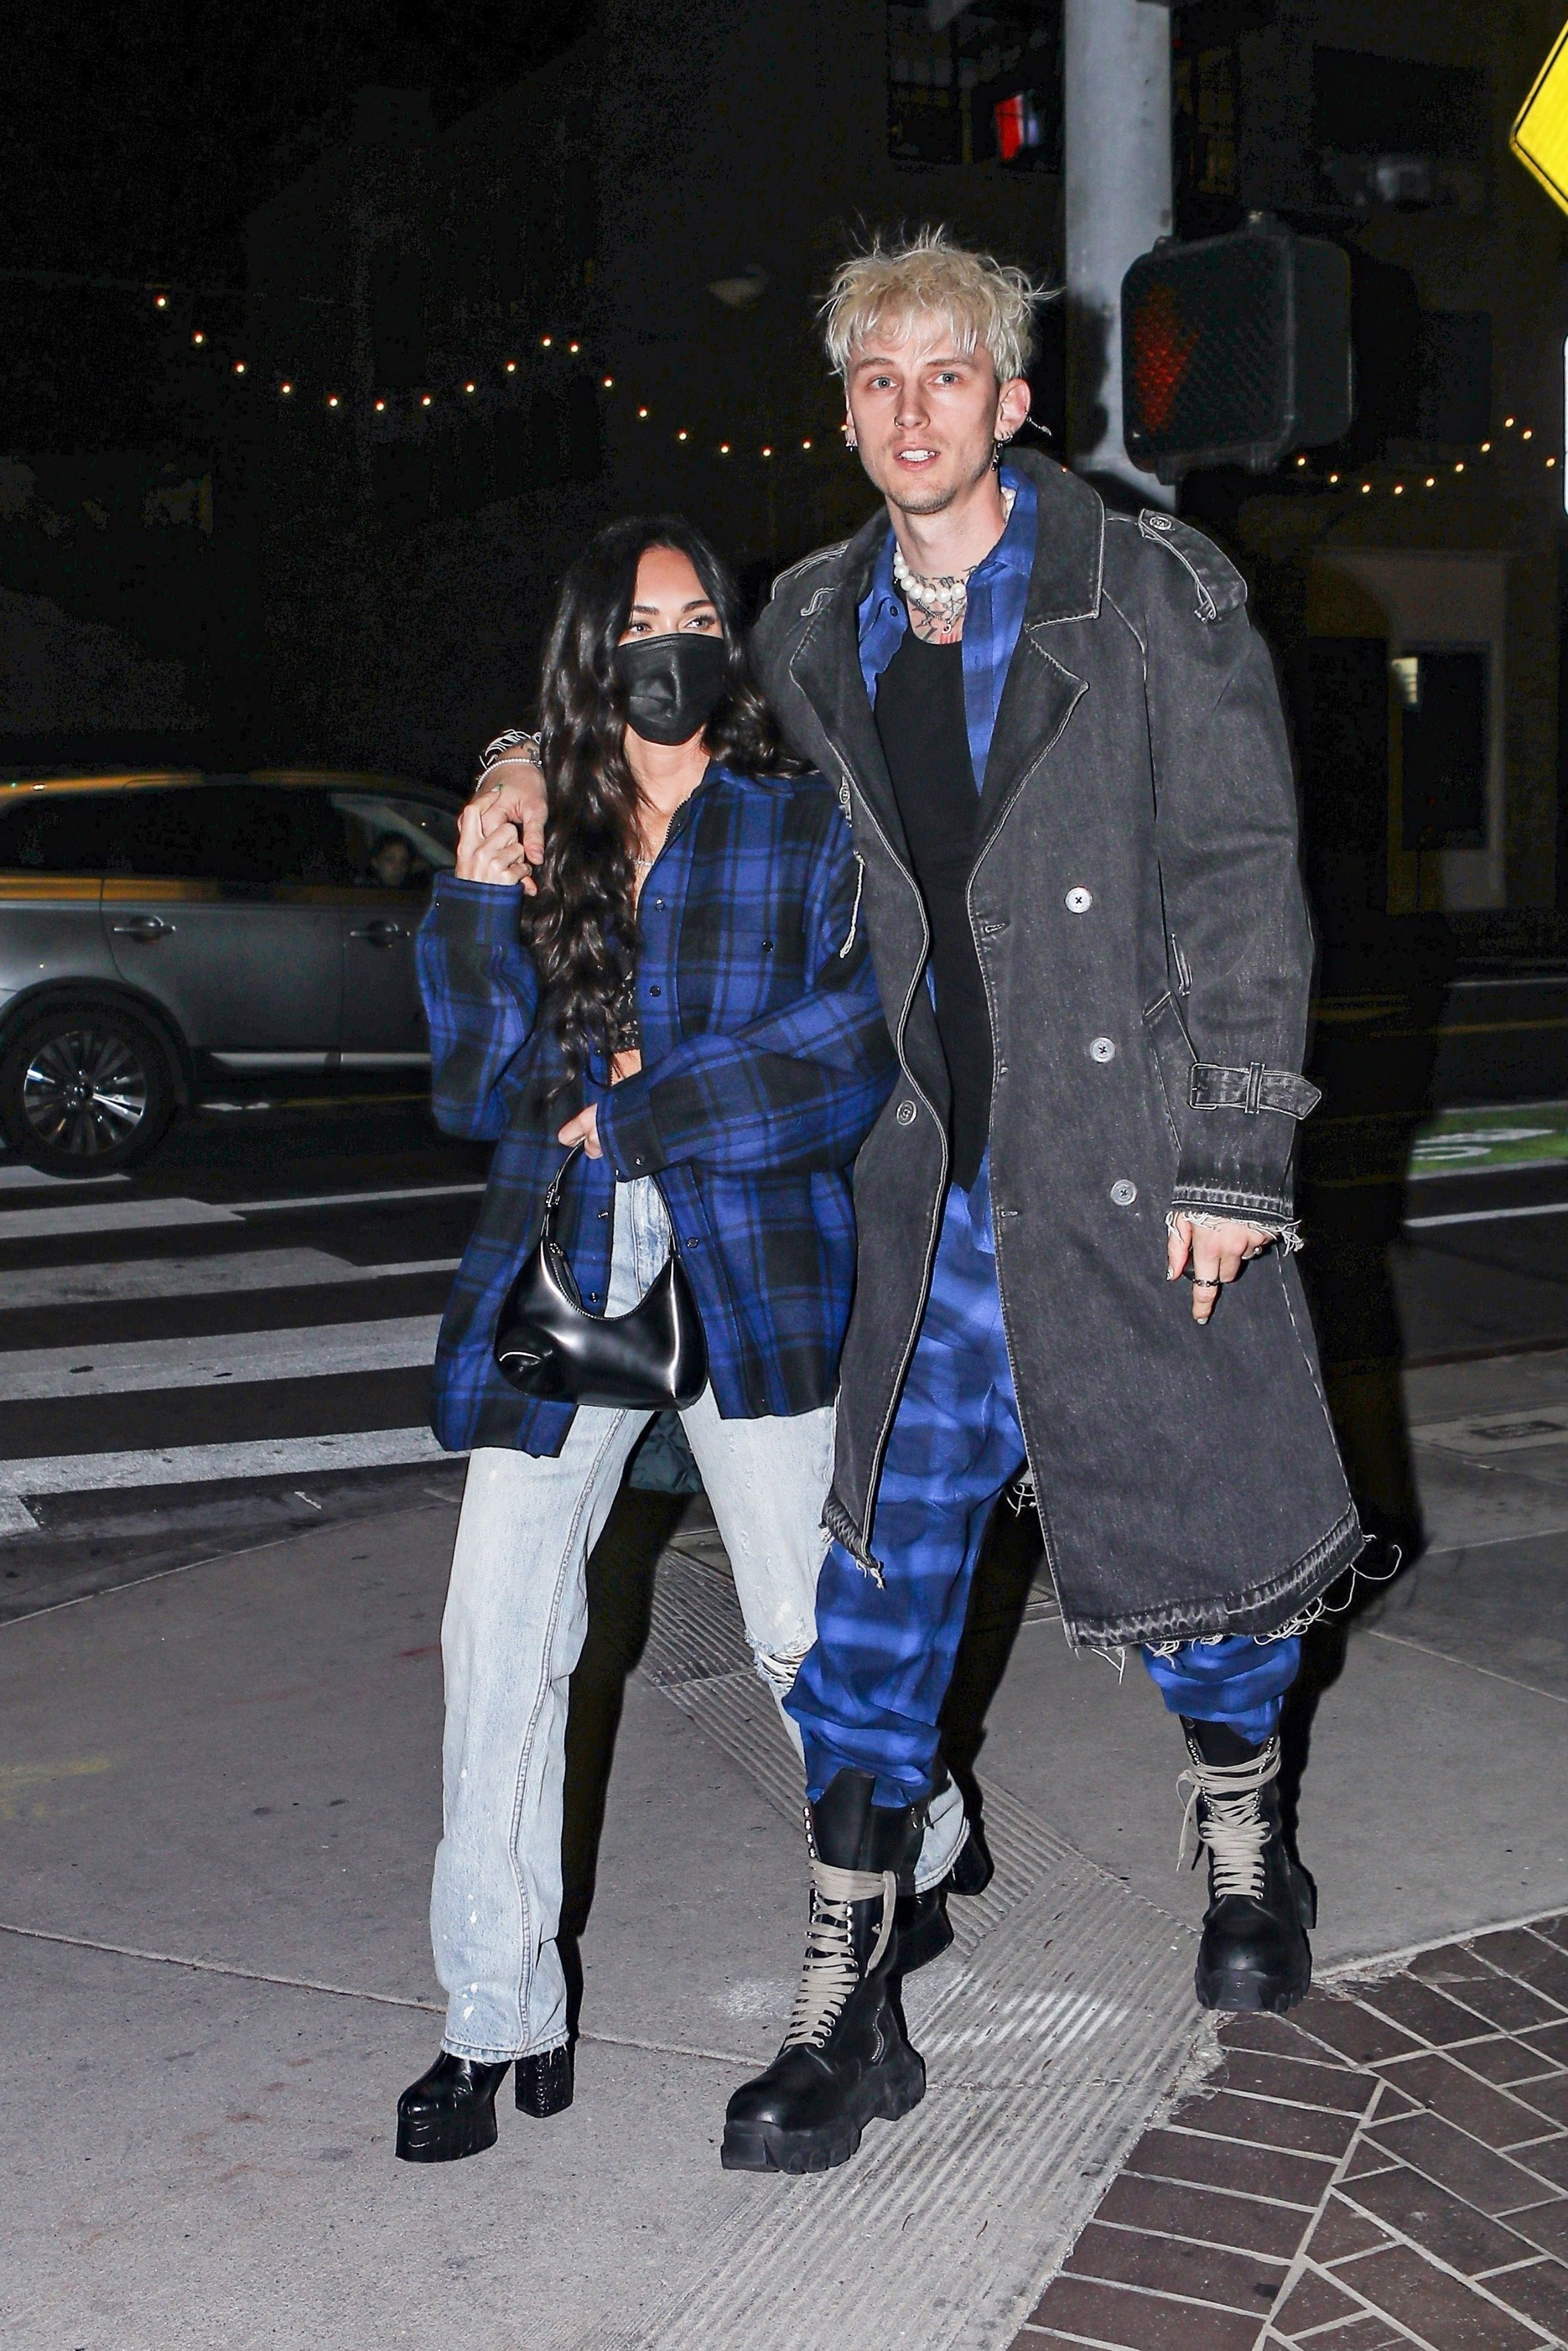 Megan Fox and Machine Gun Kelly Are Now Wearing Matching Outfits on Dates